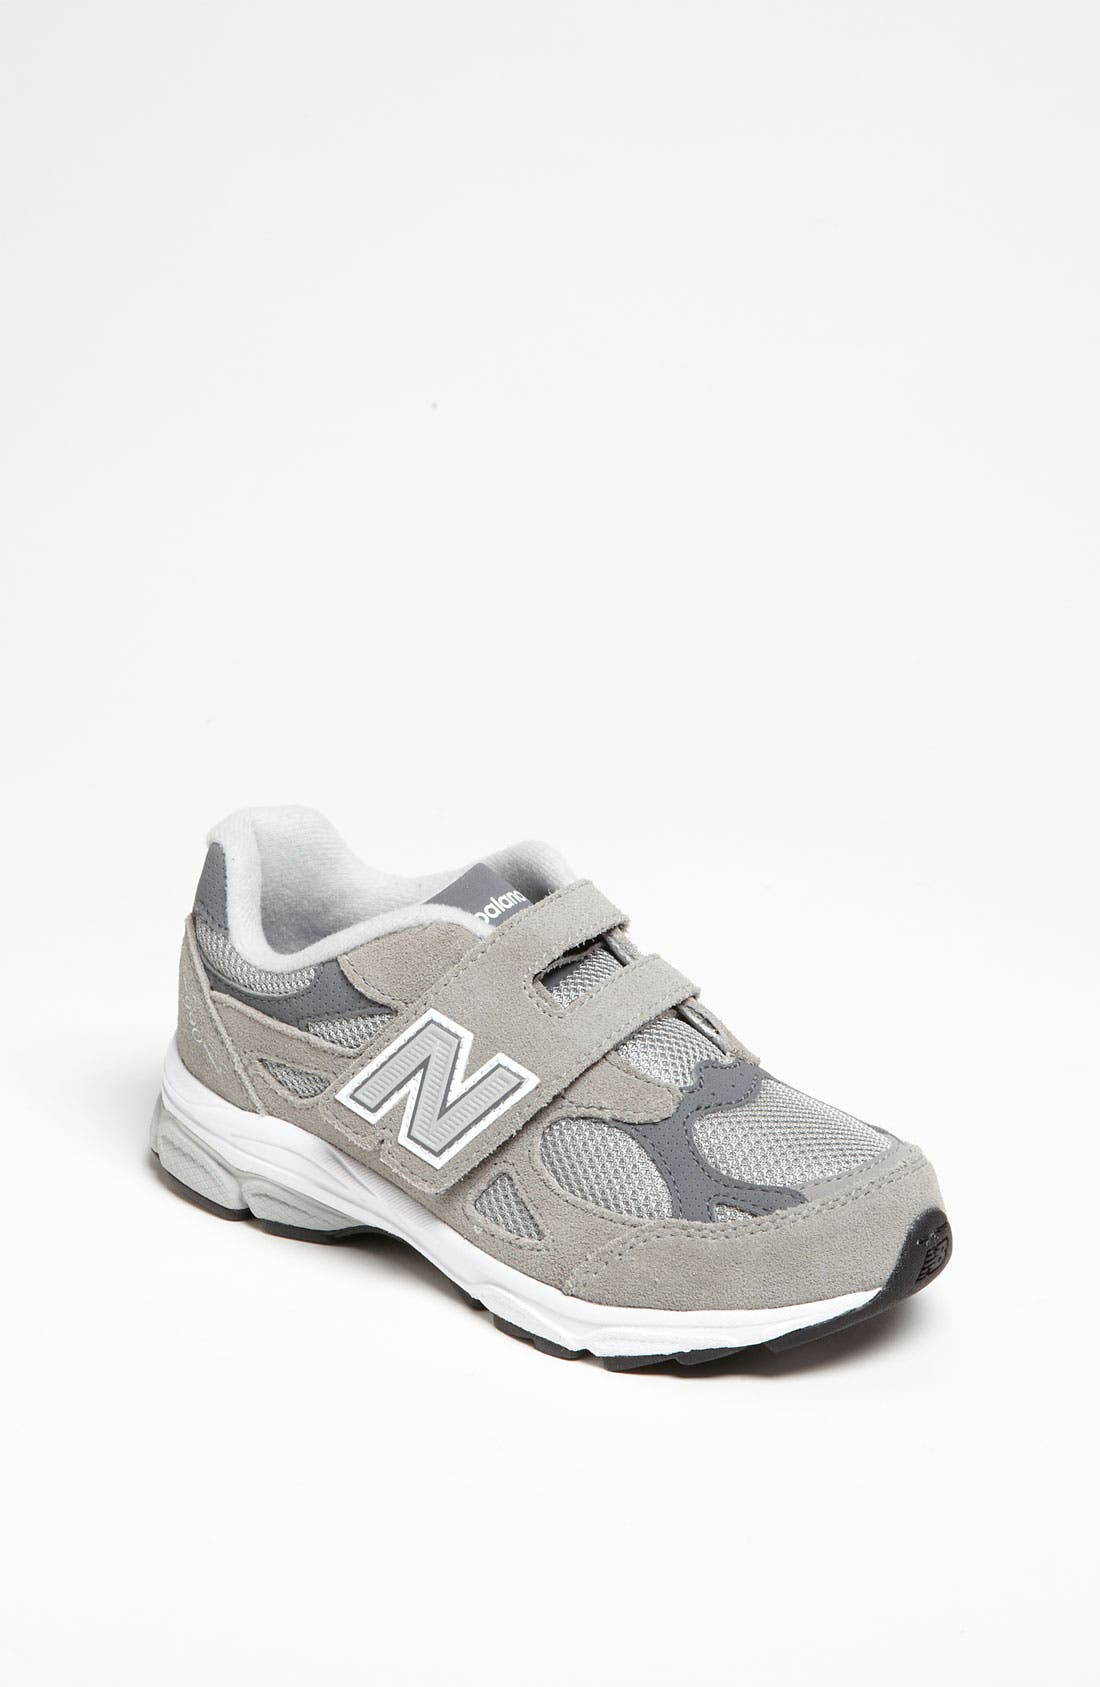 Alternate Image 1 Selected - New Balance '990' Sneaker (Baby, Walker, Toddler & Little Kid)